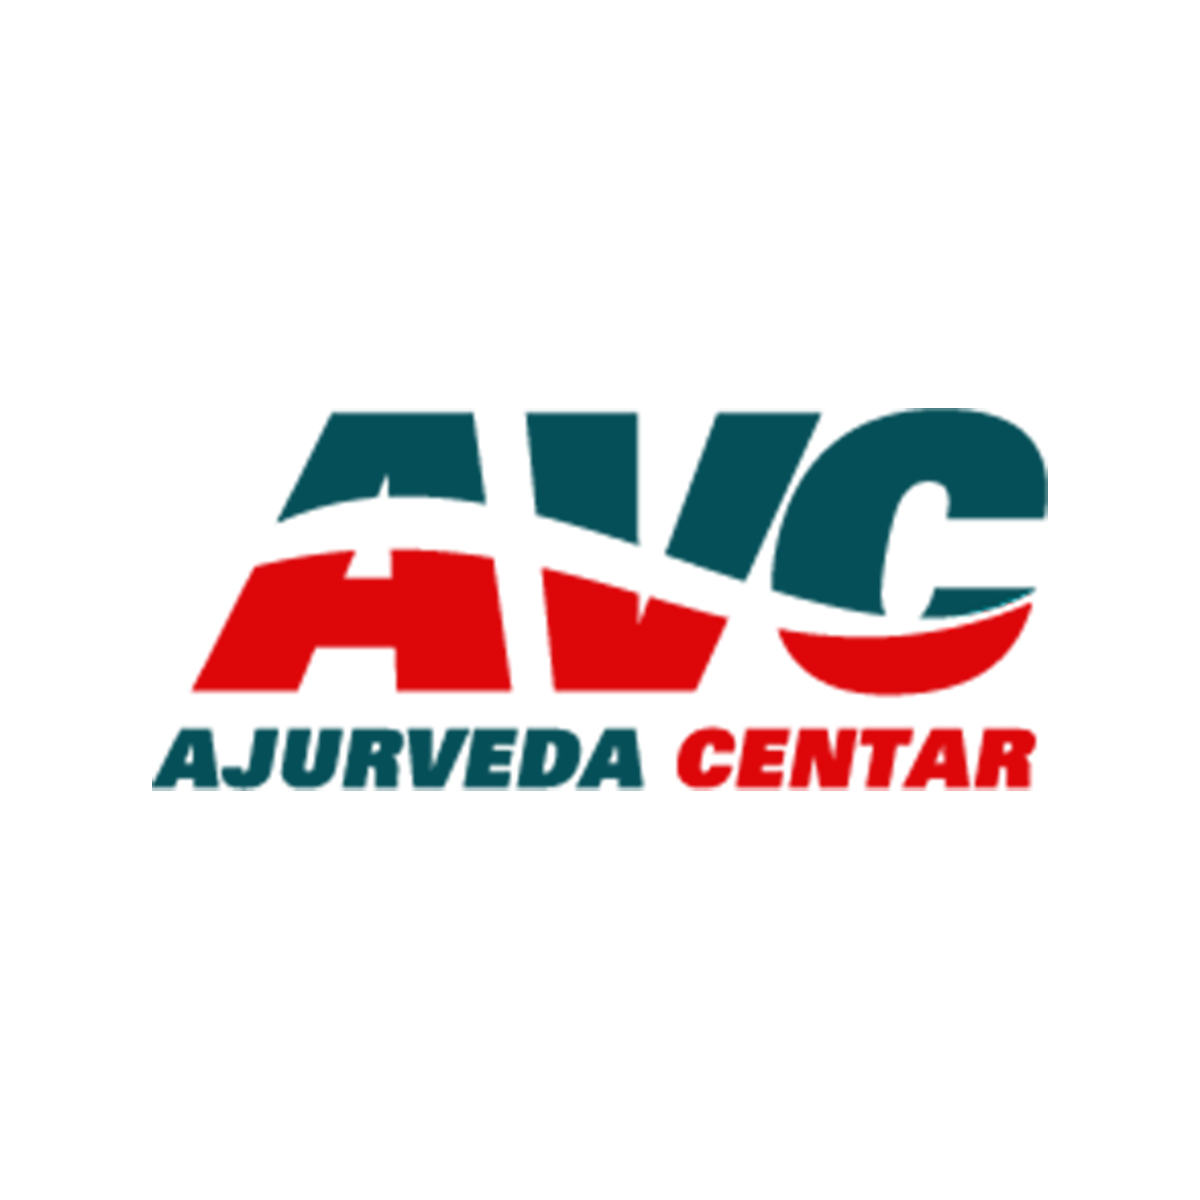 Ajurveda centar